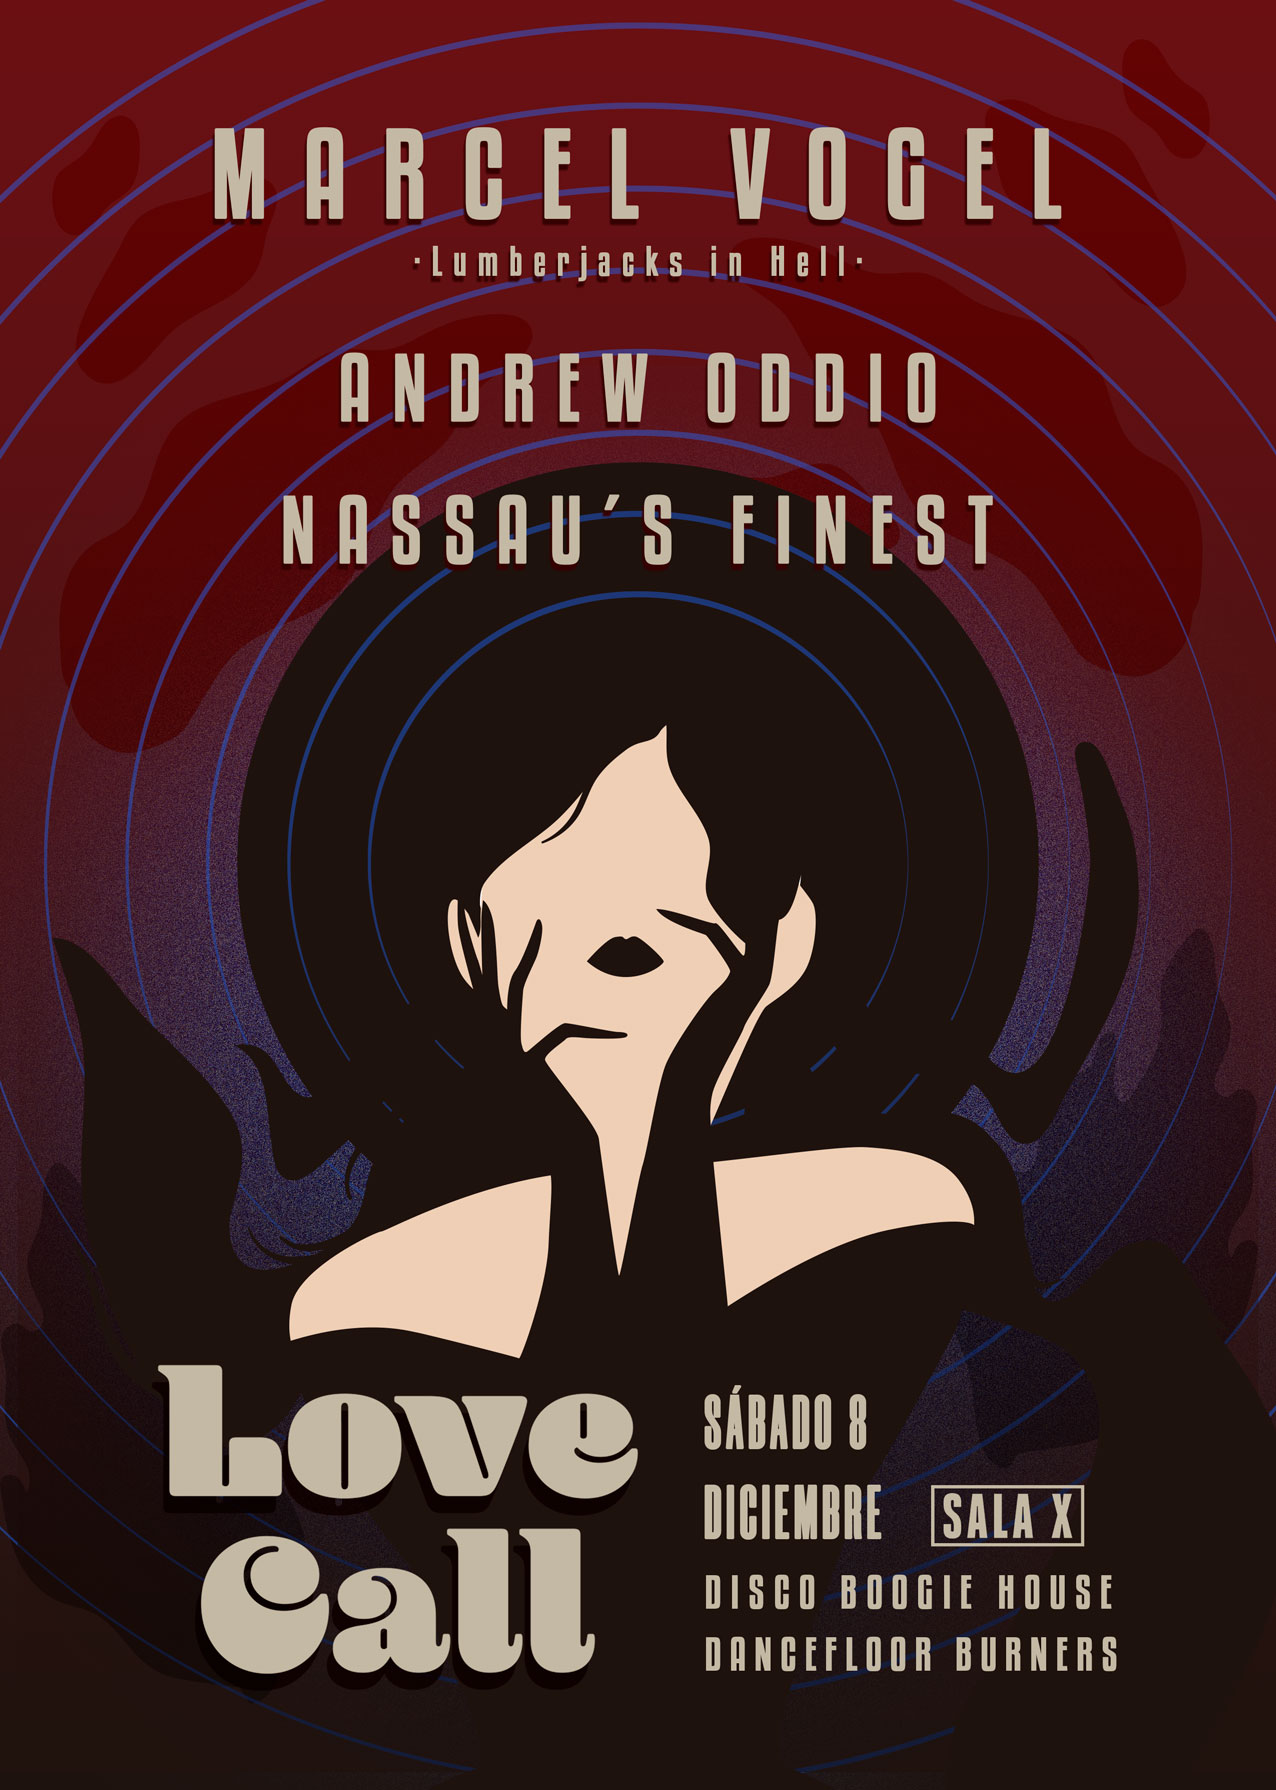 flyer_lovecall_dic18_a5 (1)